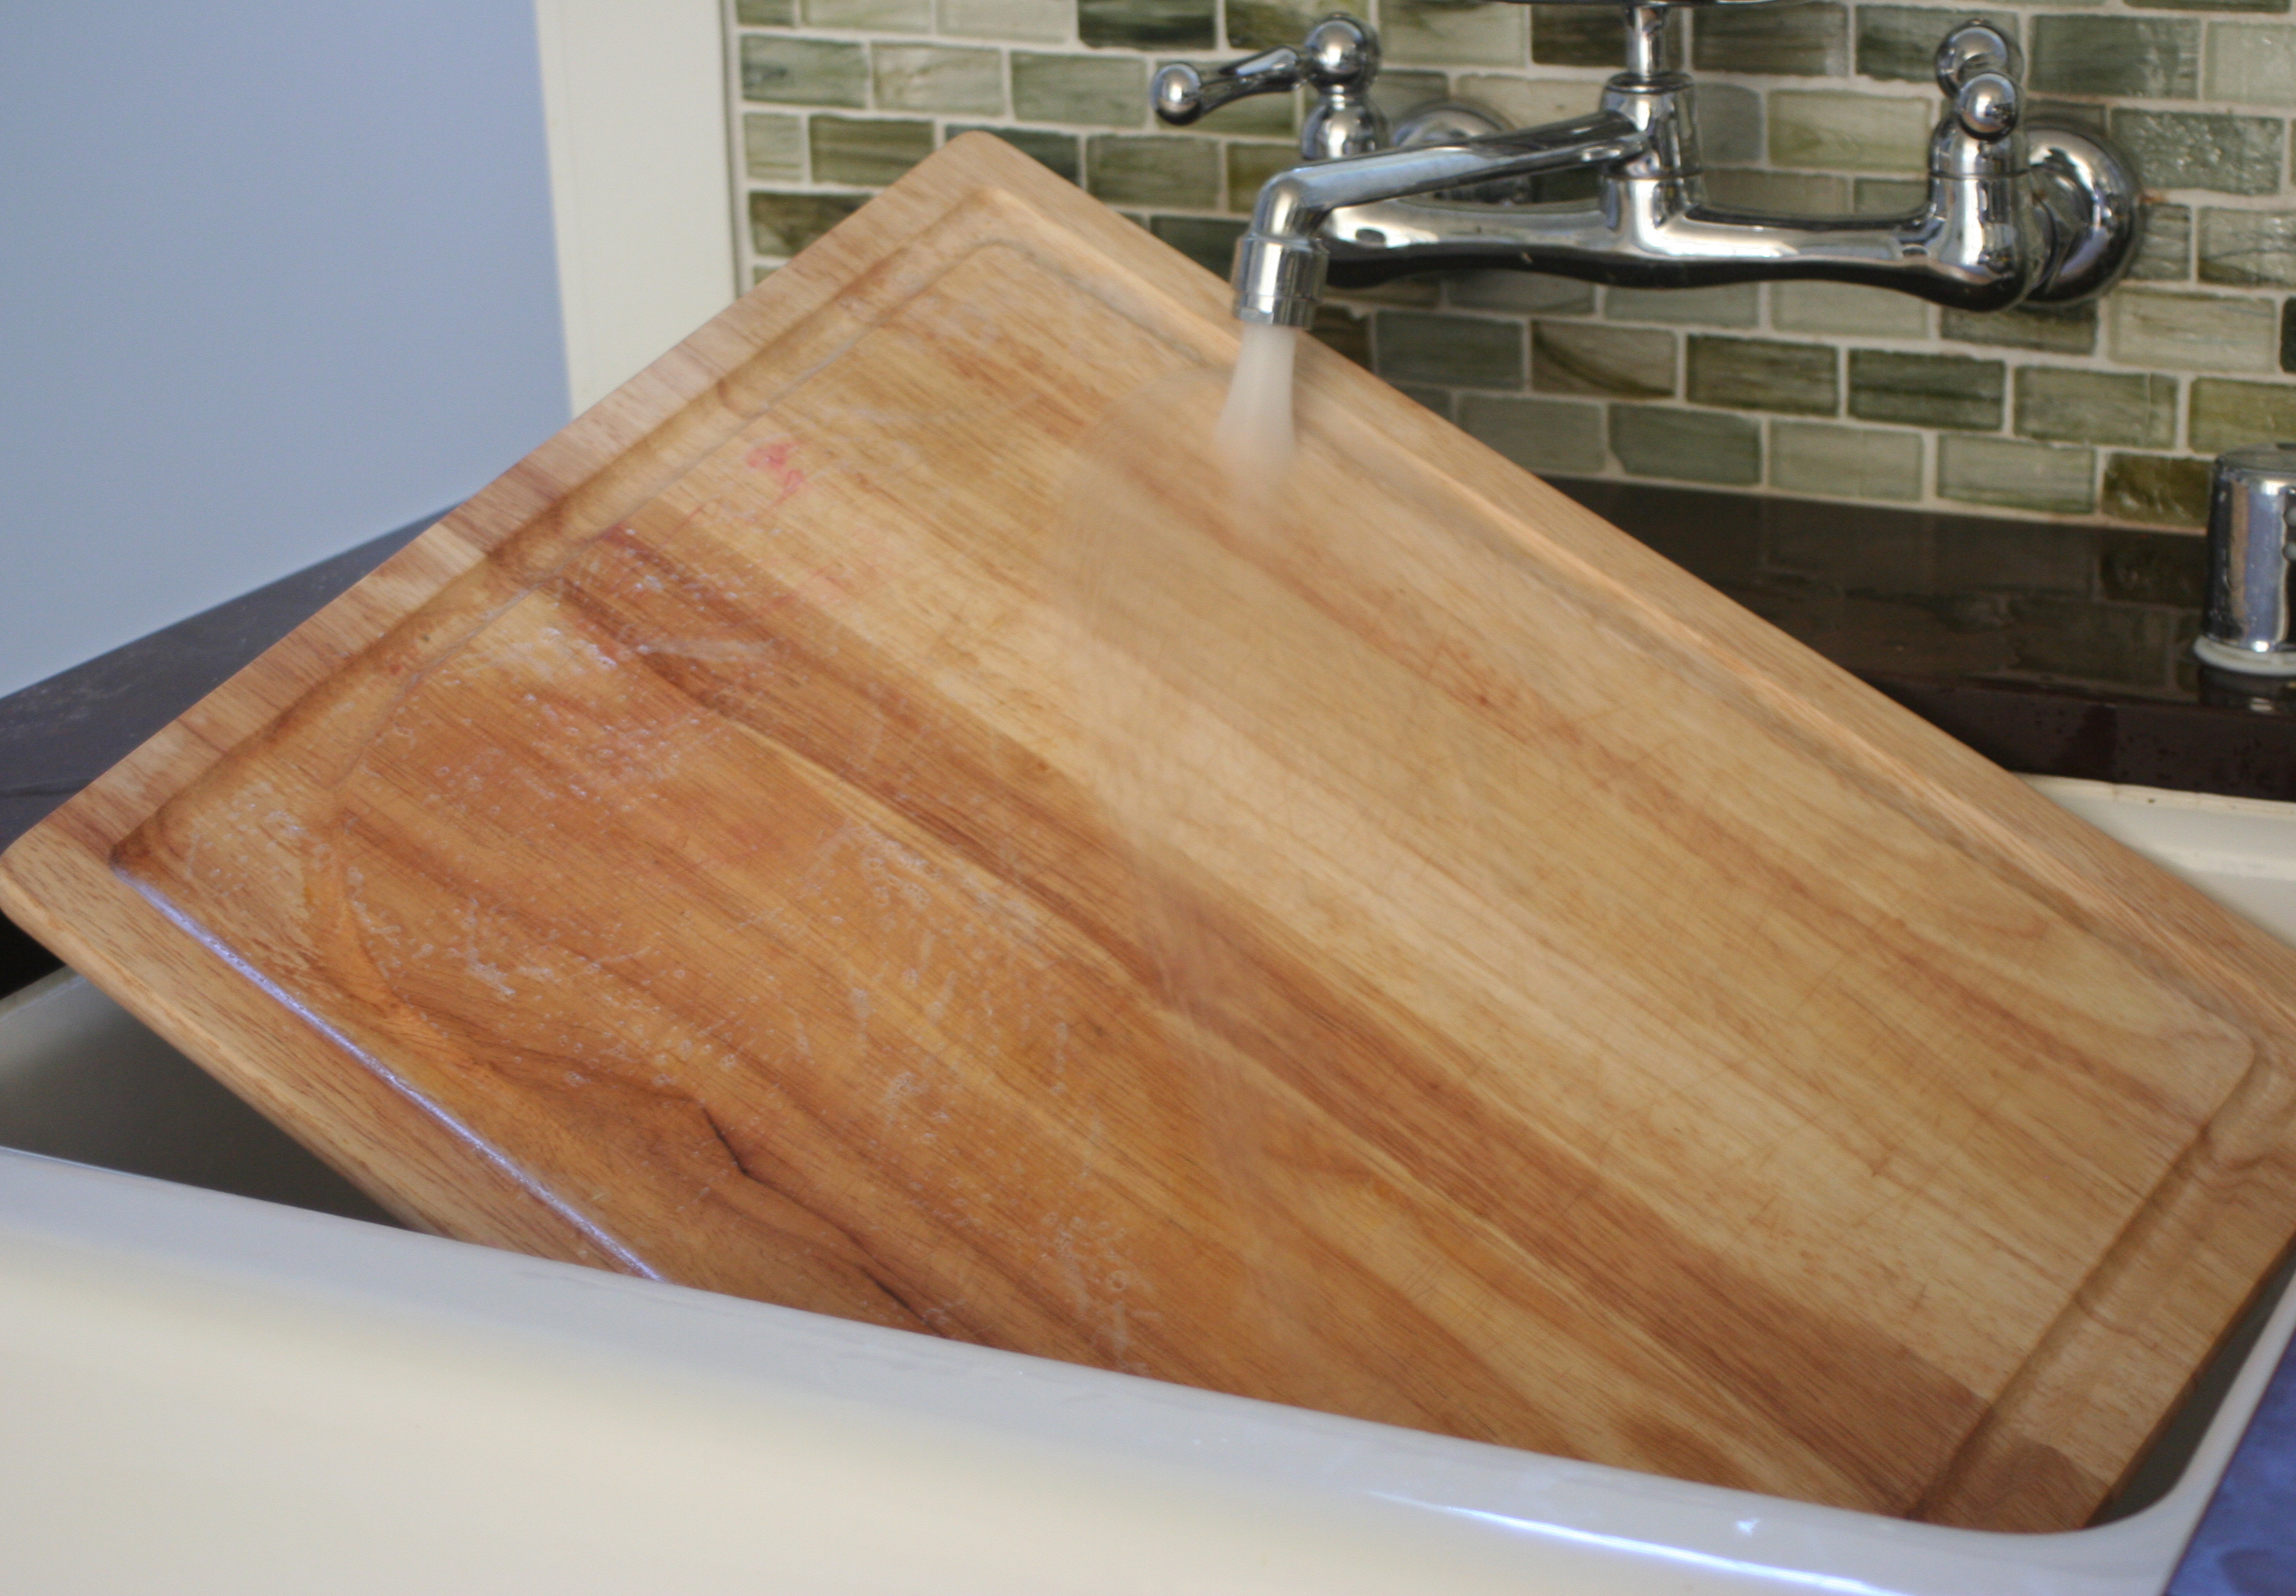 How To Clean A Wooden Cutting Board Naturally Live Simply By Annie